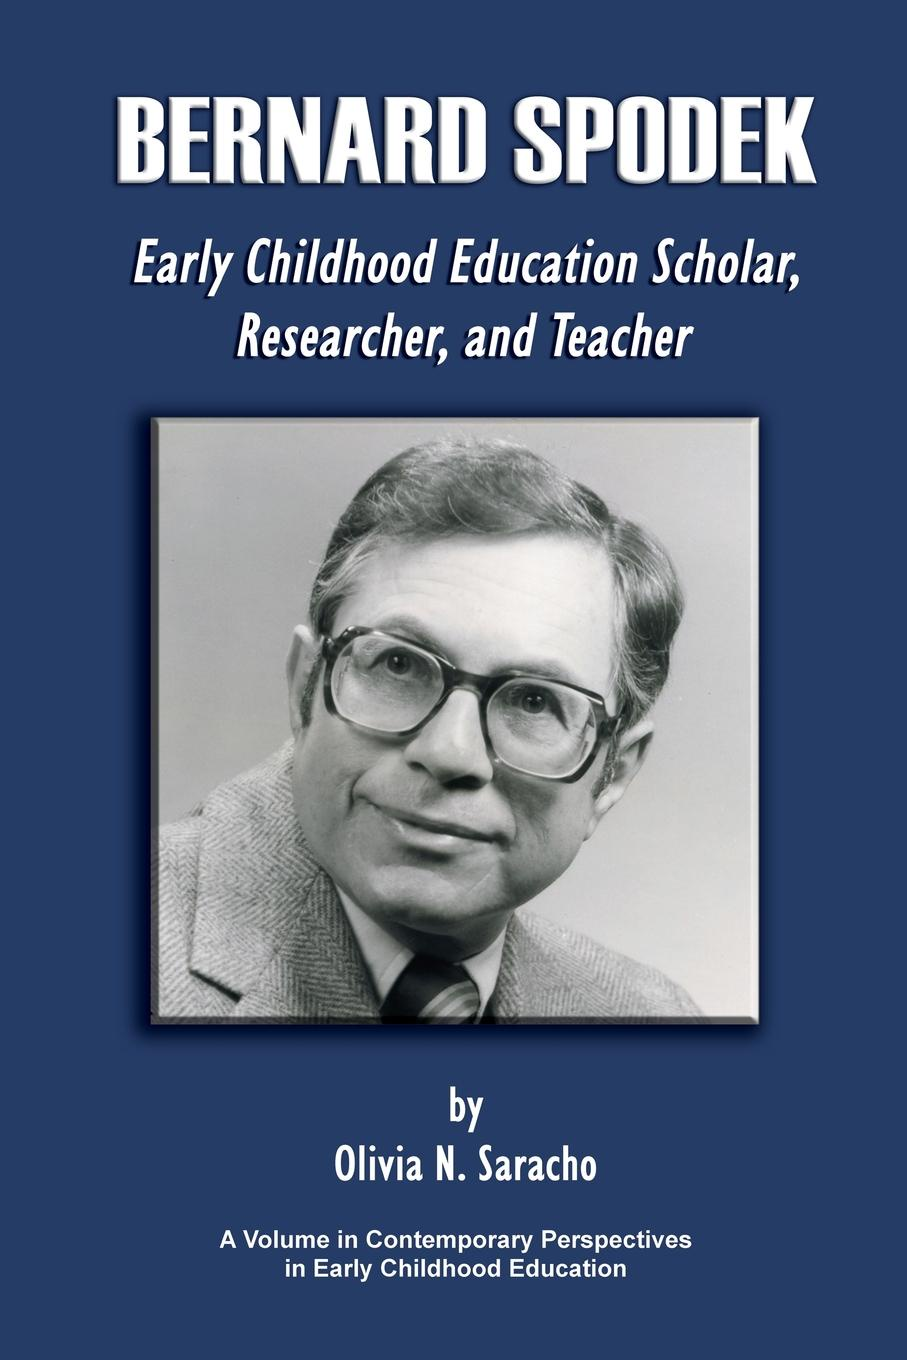 Olivia N. Saracho Bernard Spodek, Early Childhood Education Scholar, Researcher, and Teacher michael a woodley in the wake of bernard heuvelmans